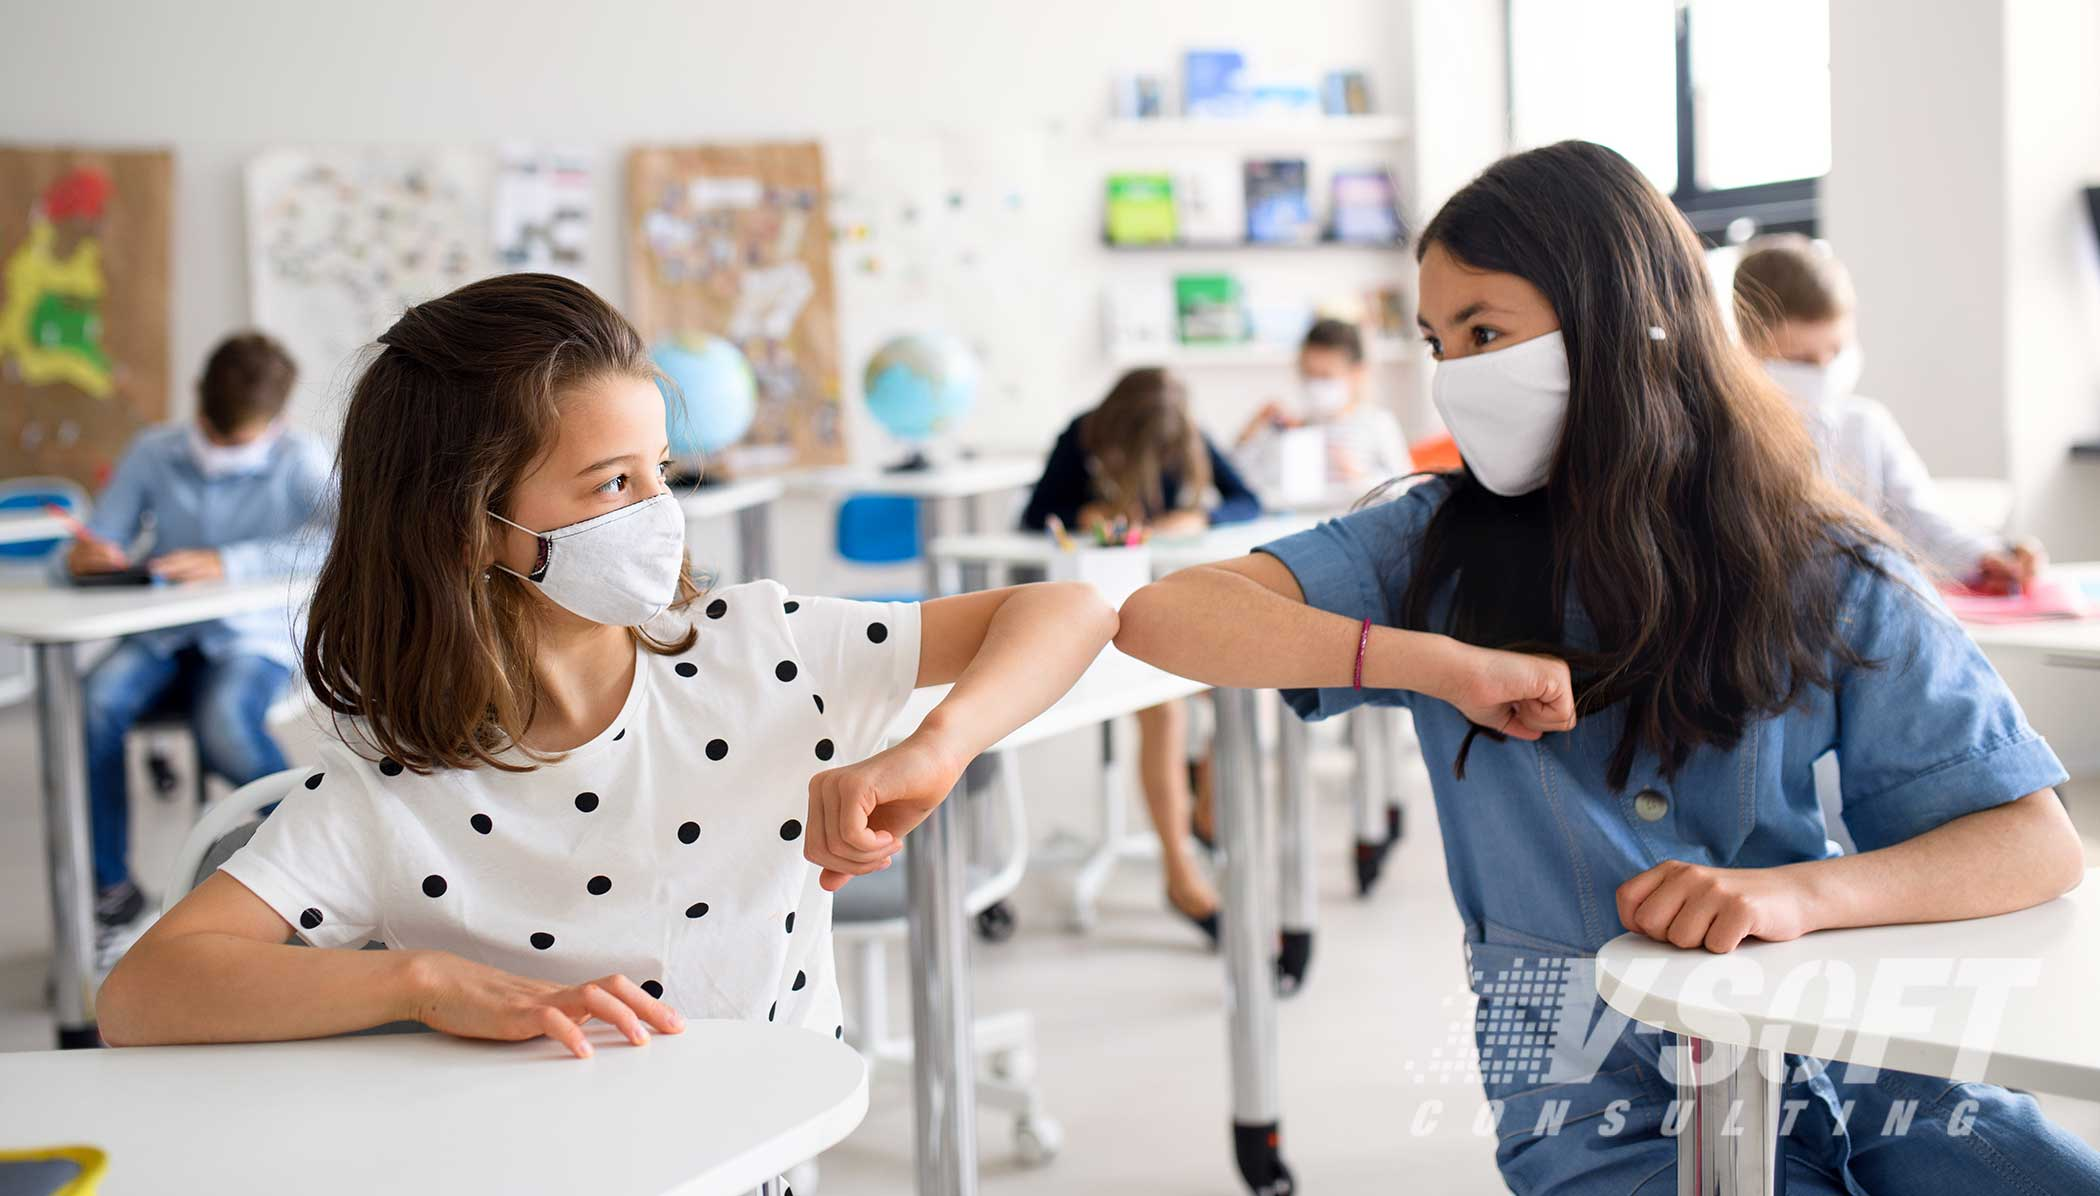 School children returning to classroom with masks